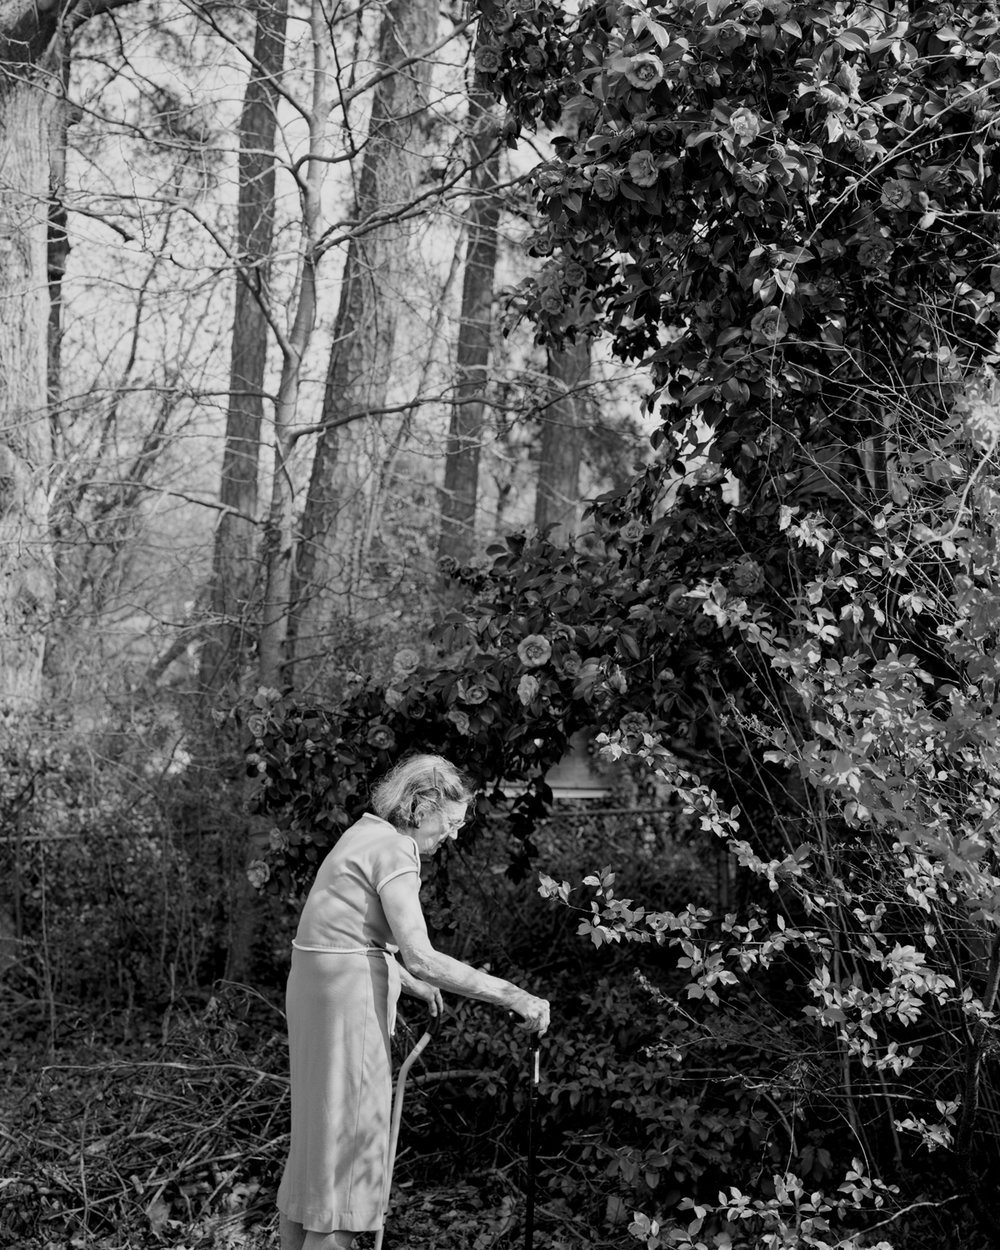 Susan Worsham ,  Margaret with Giant Camellia Japonica,  2012. Archival pigment print, 50 x 40 inches. Image courtesy of the artist and Candela Books + Gallery, Richmond.